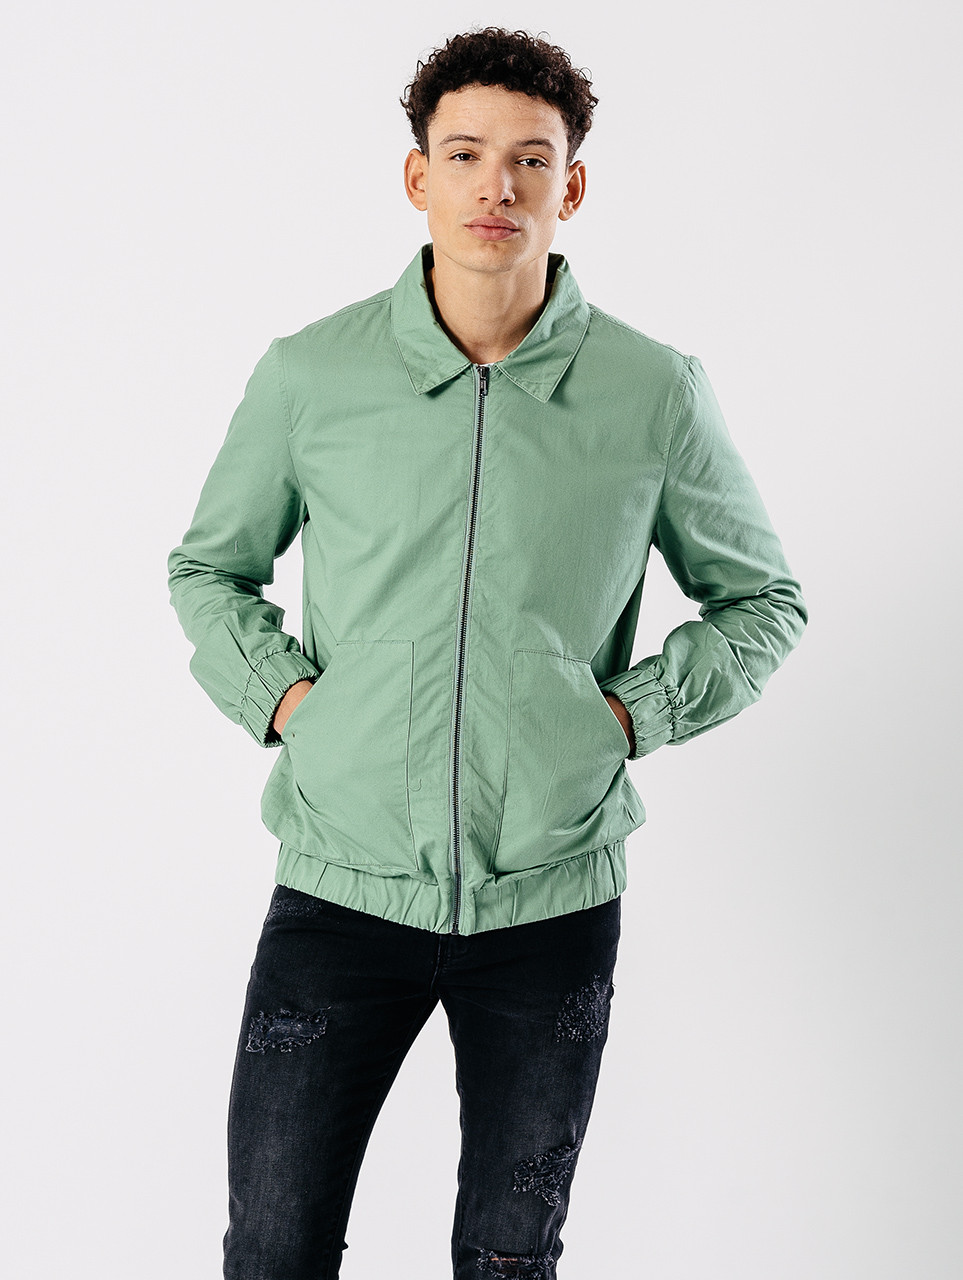 Green Oversized Pockets Harrington Jacket